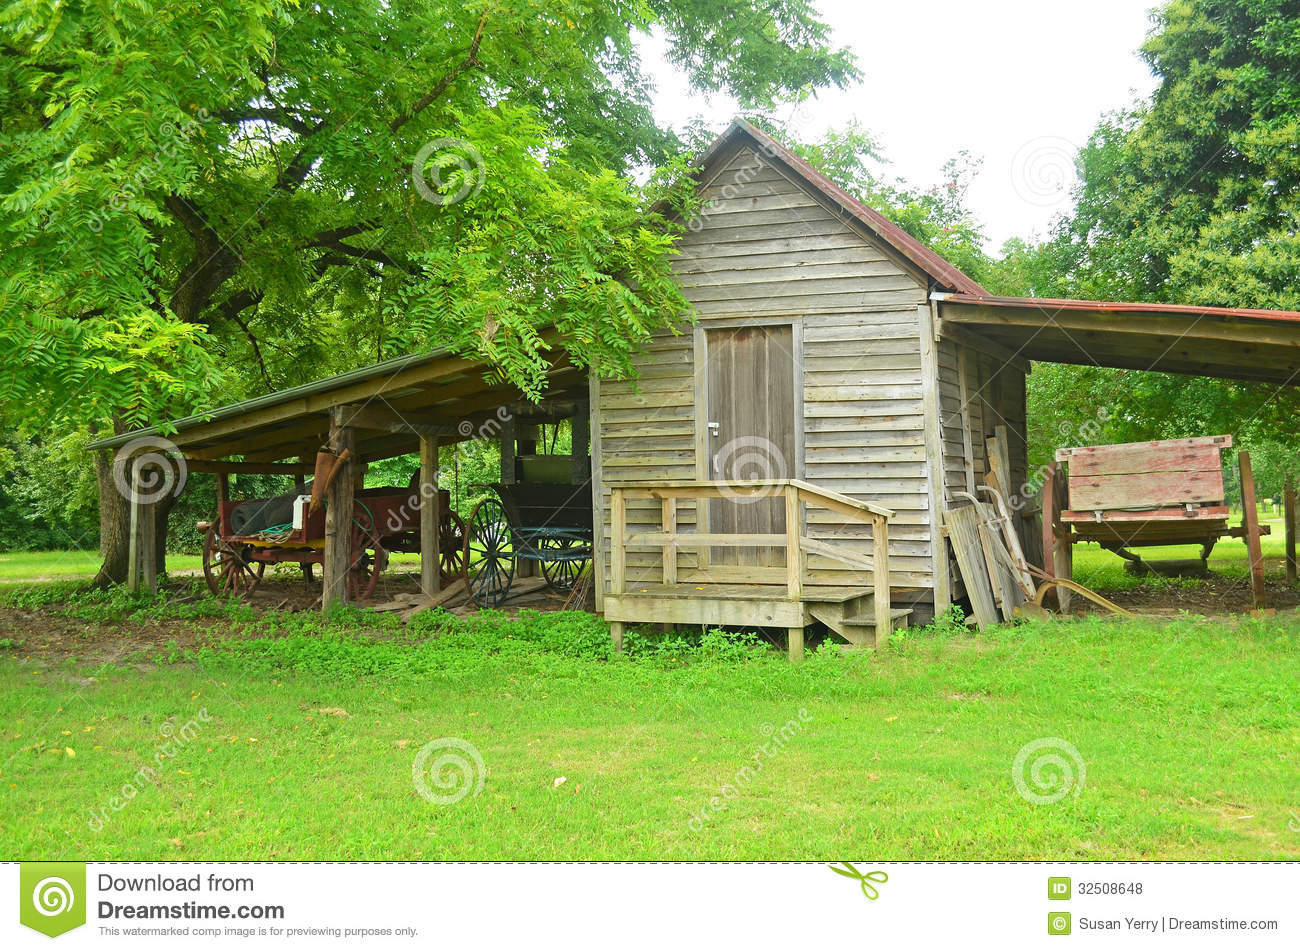 Old Wood Shed Antique Wagons Horse Carriage Stock Photo - Image: 32508648